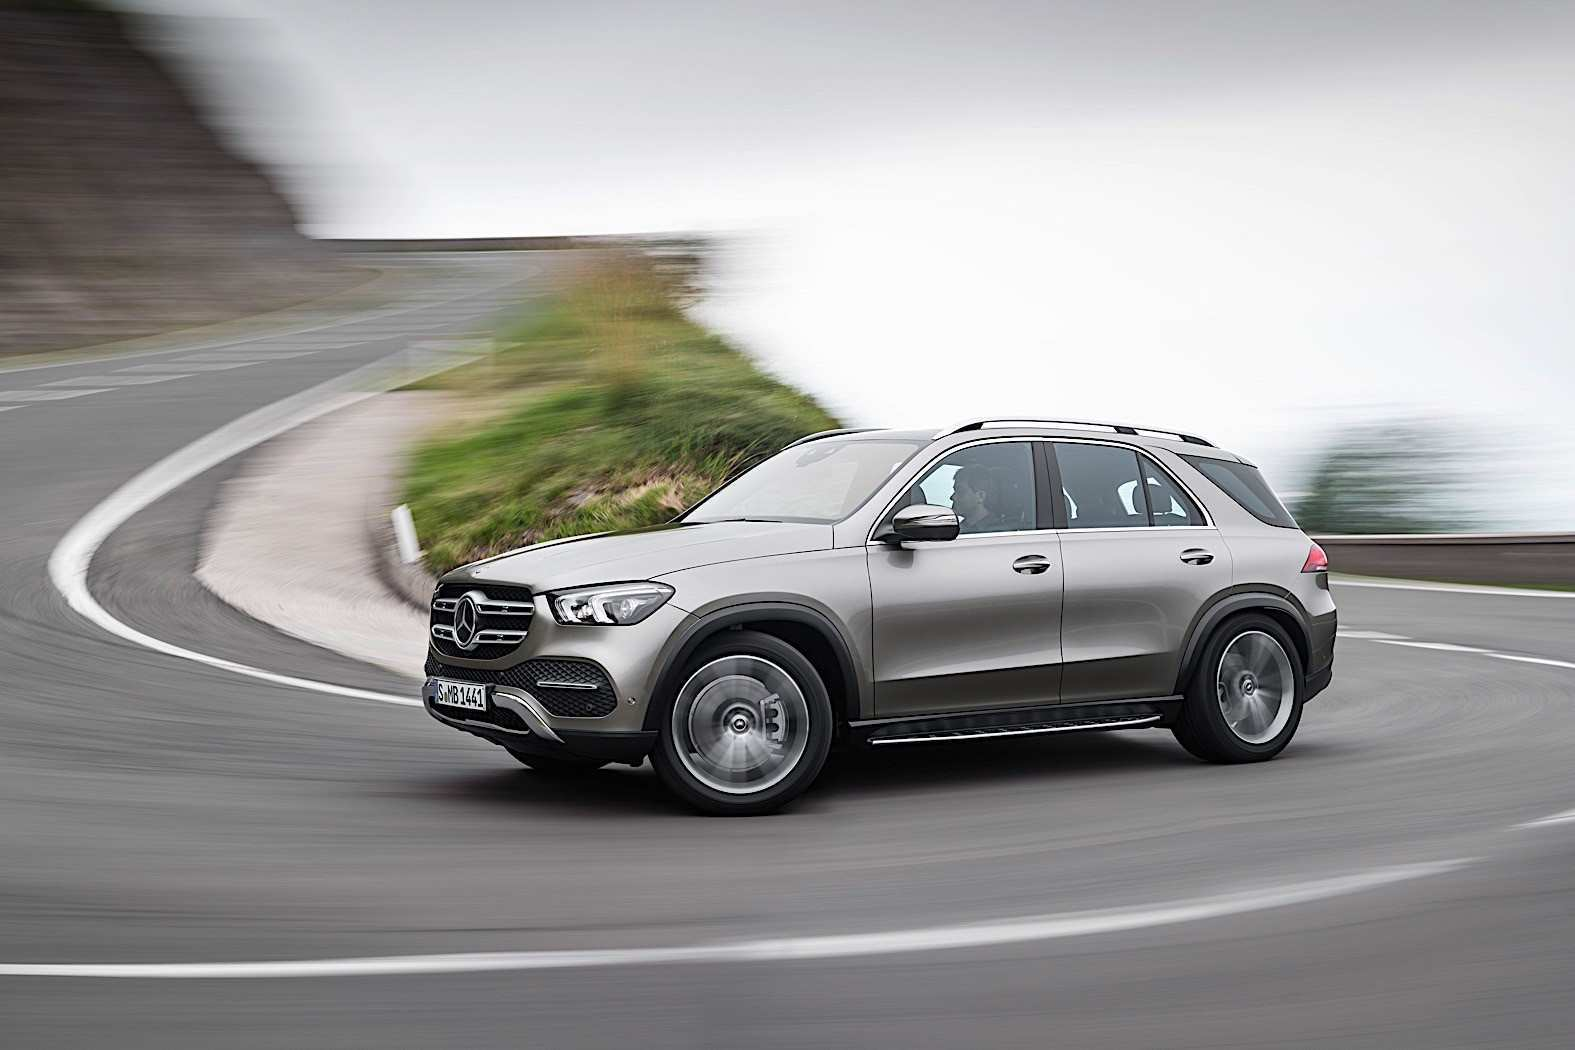 54 Best Review 2019 Mercedes Diesel Suv Exterior and Interior for 2019 Mercedes Diesel Suv